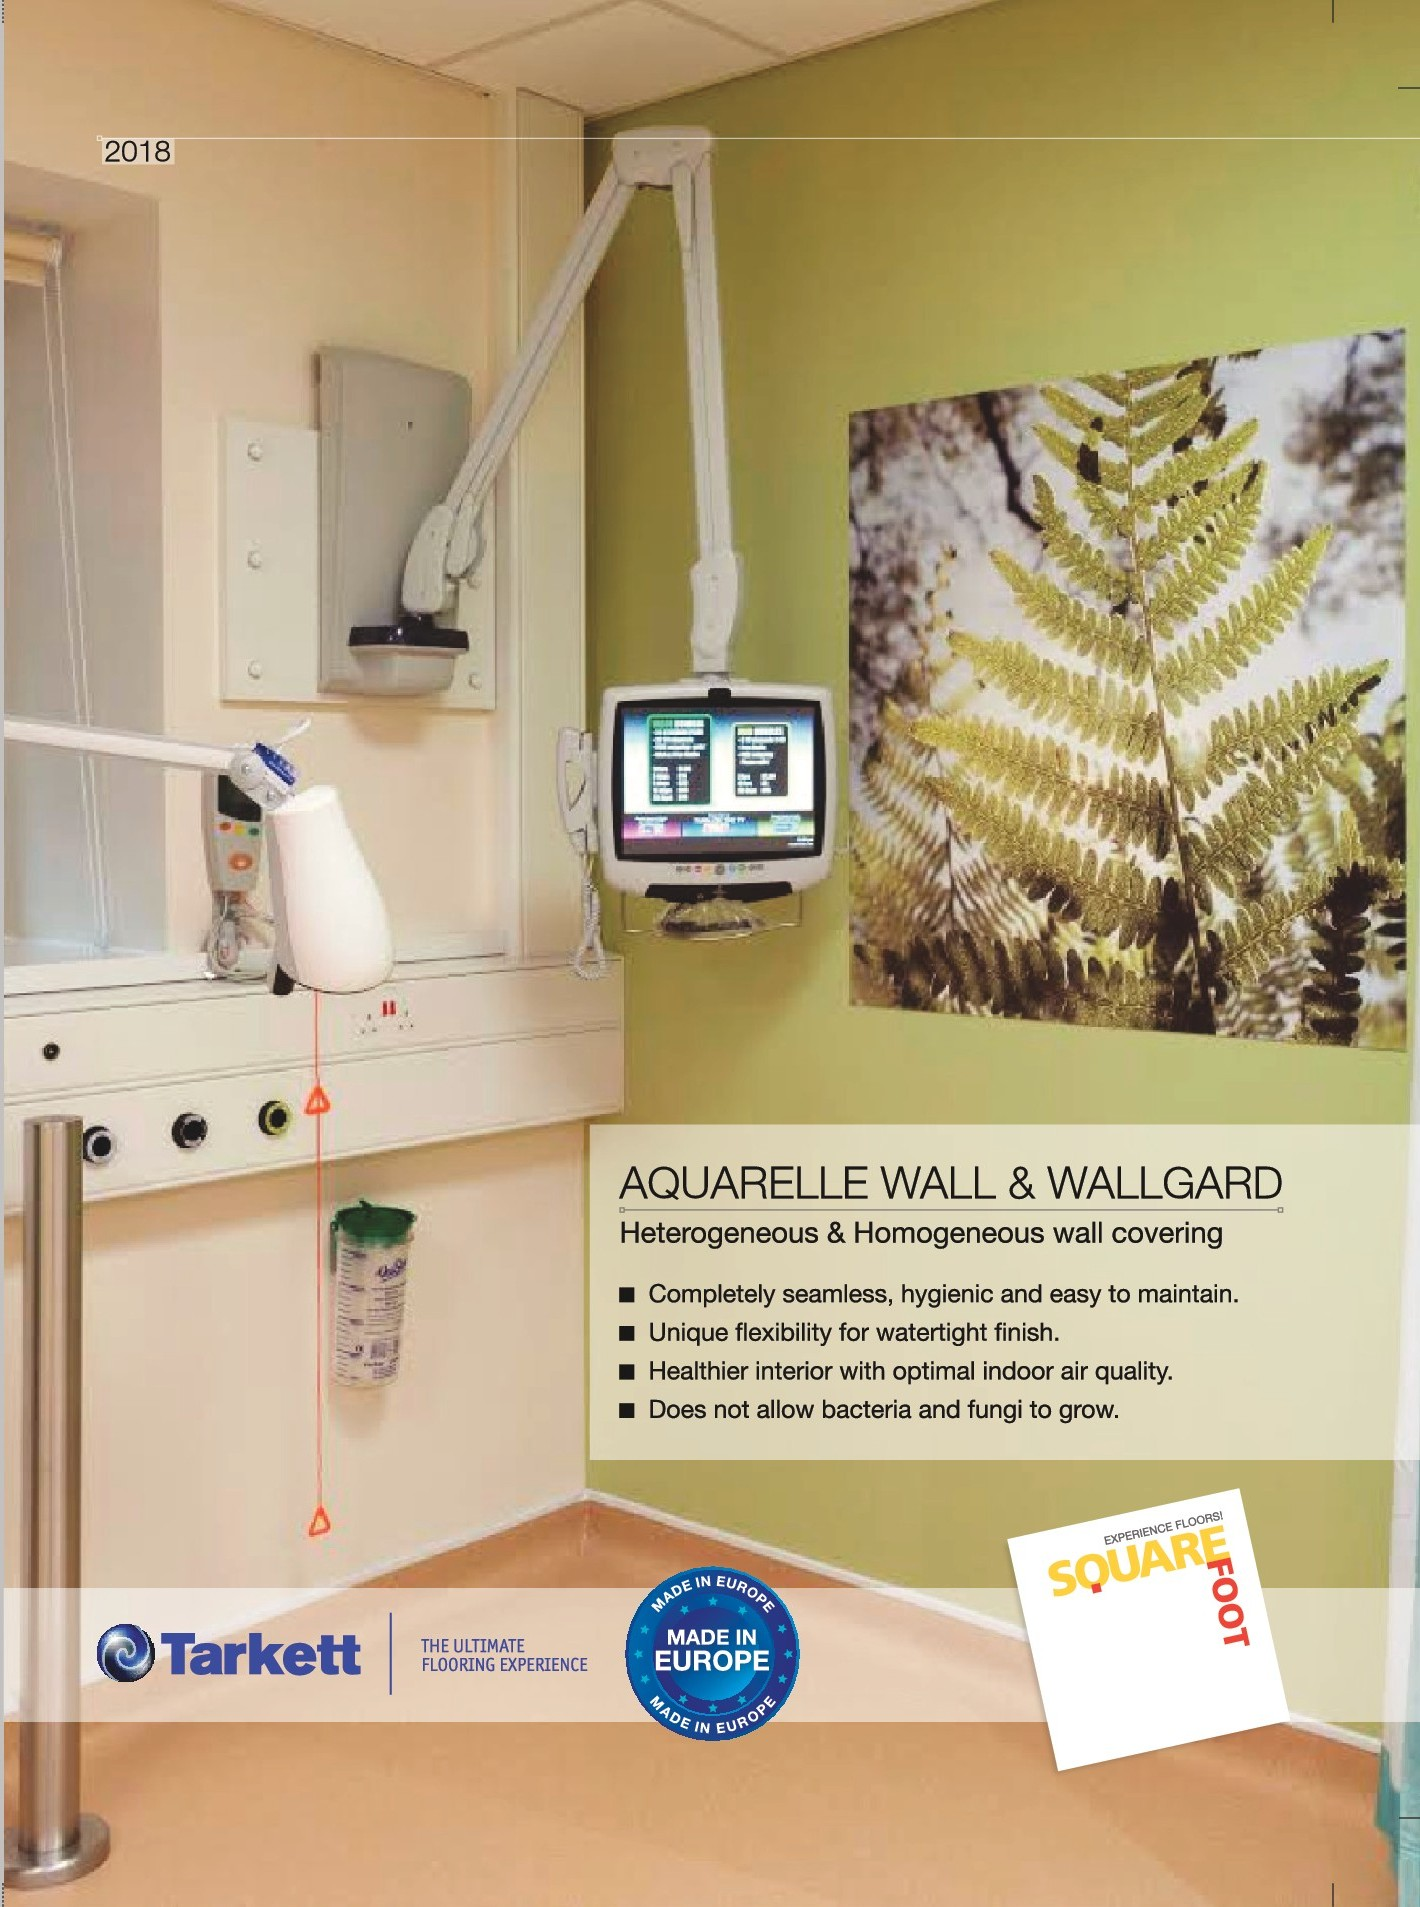 Square Foot Products Catalogue